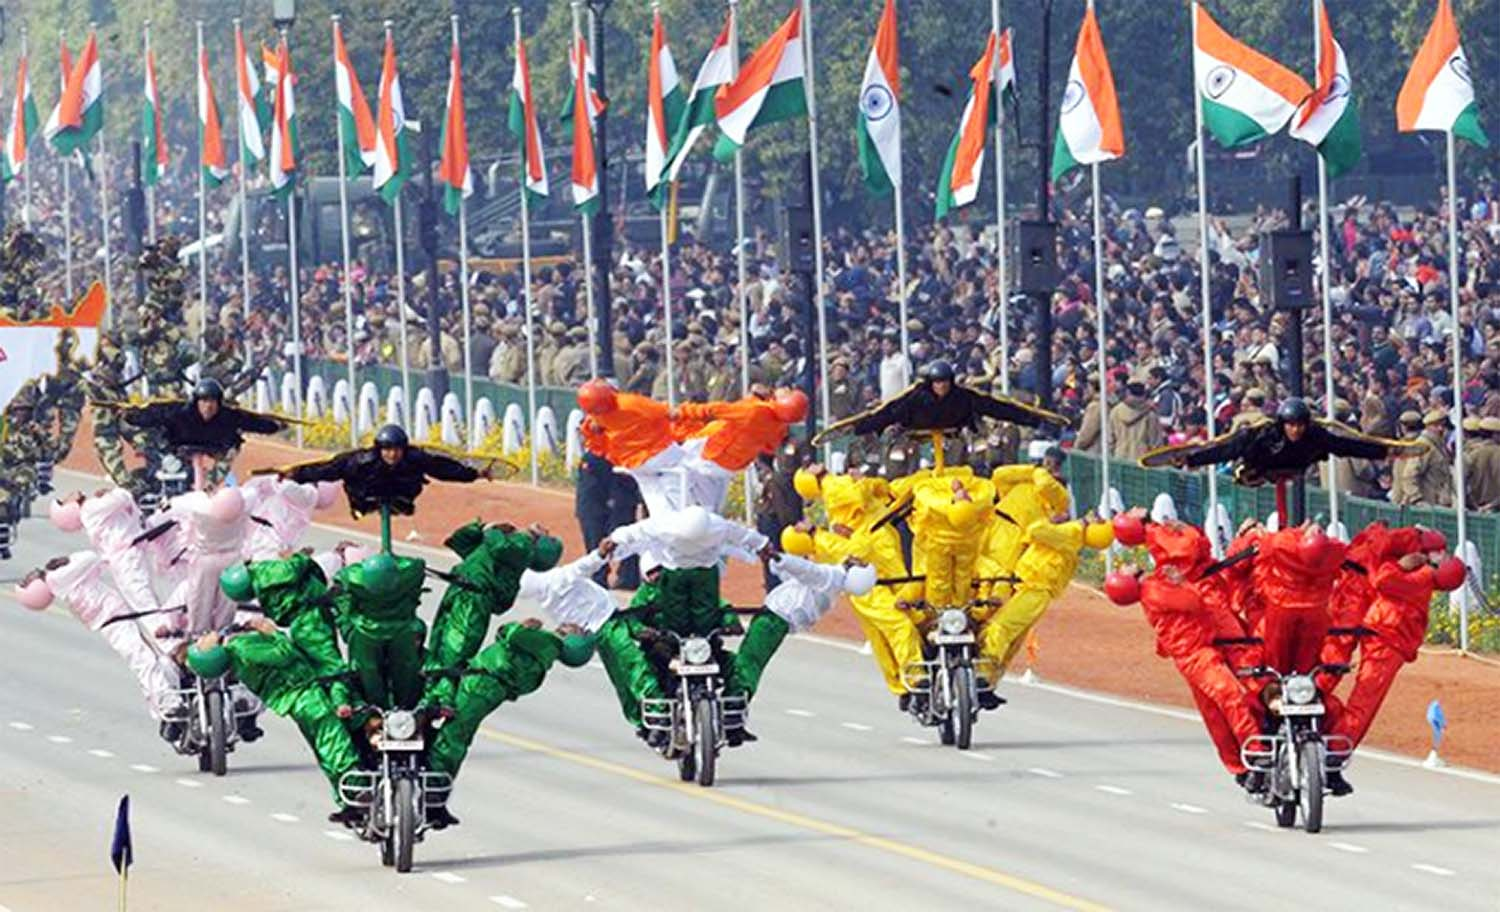 Bike stunts during republic day celebration by Indian Army